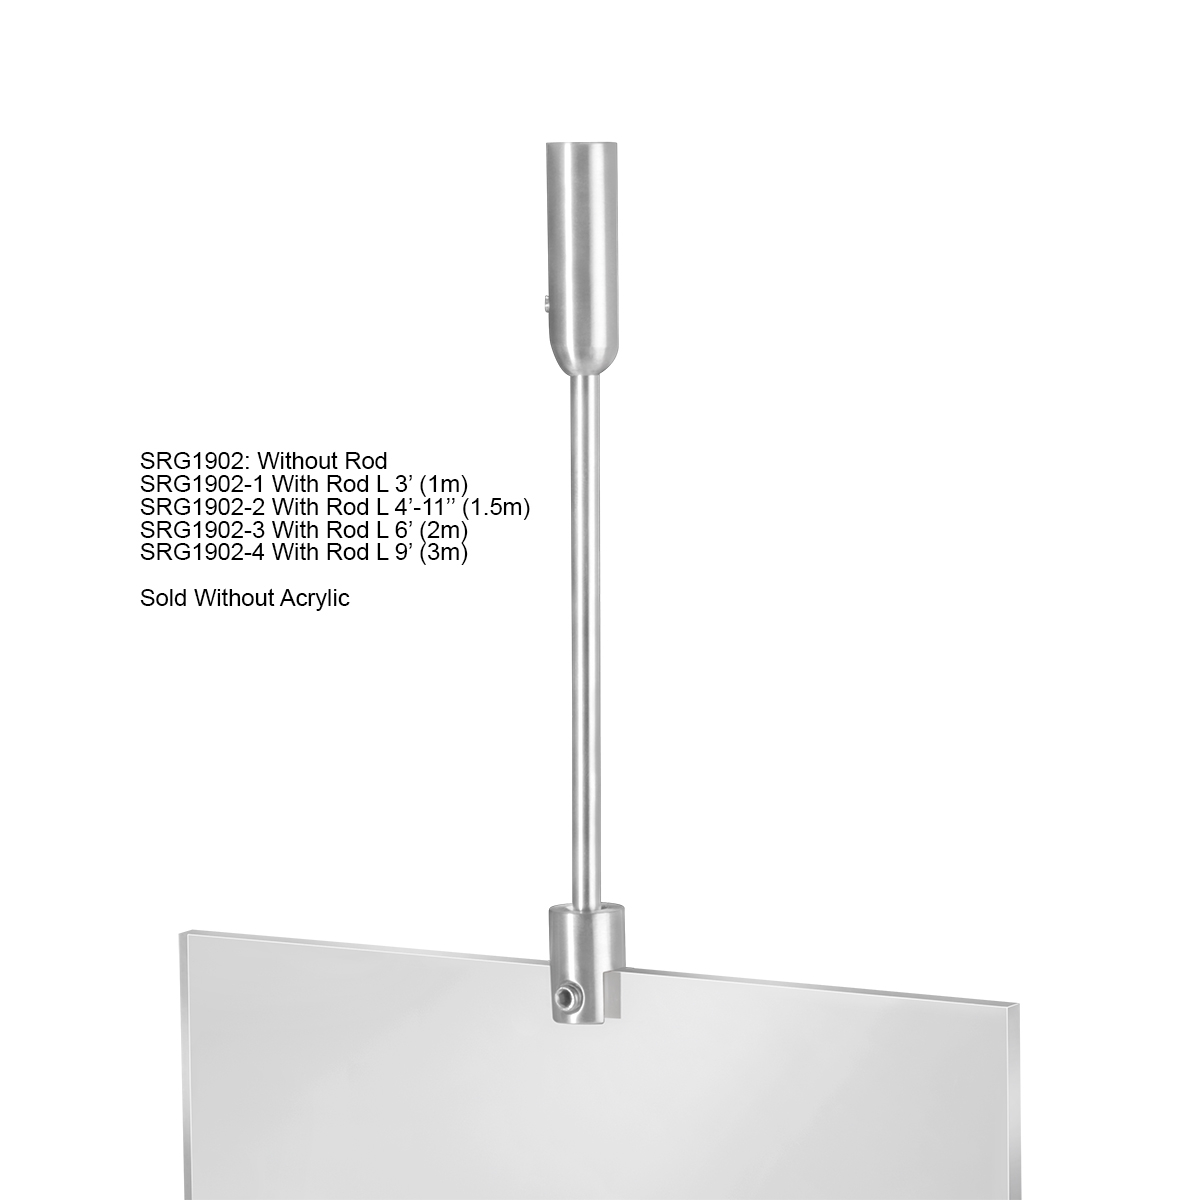 Ceiling Suspended Rod Kit - 6' - Stainless Steel